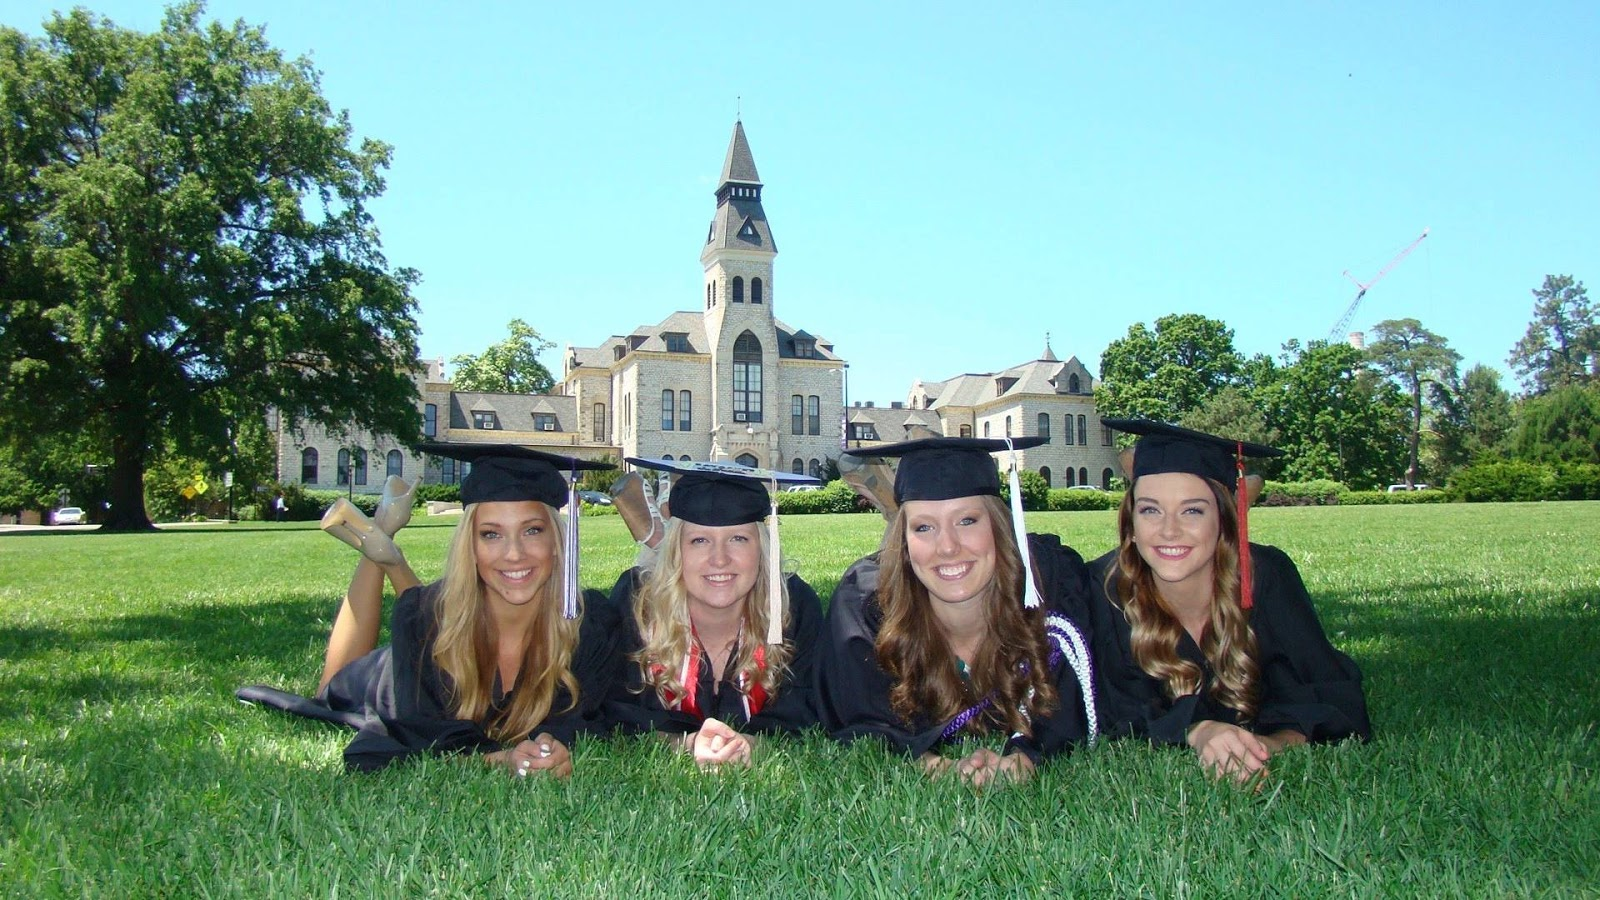 Taylor Russo and friends at KState graduation